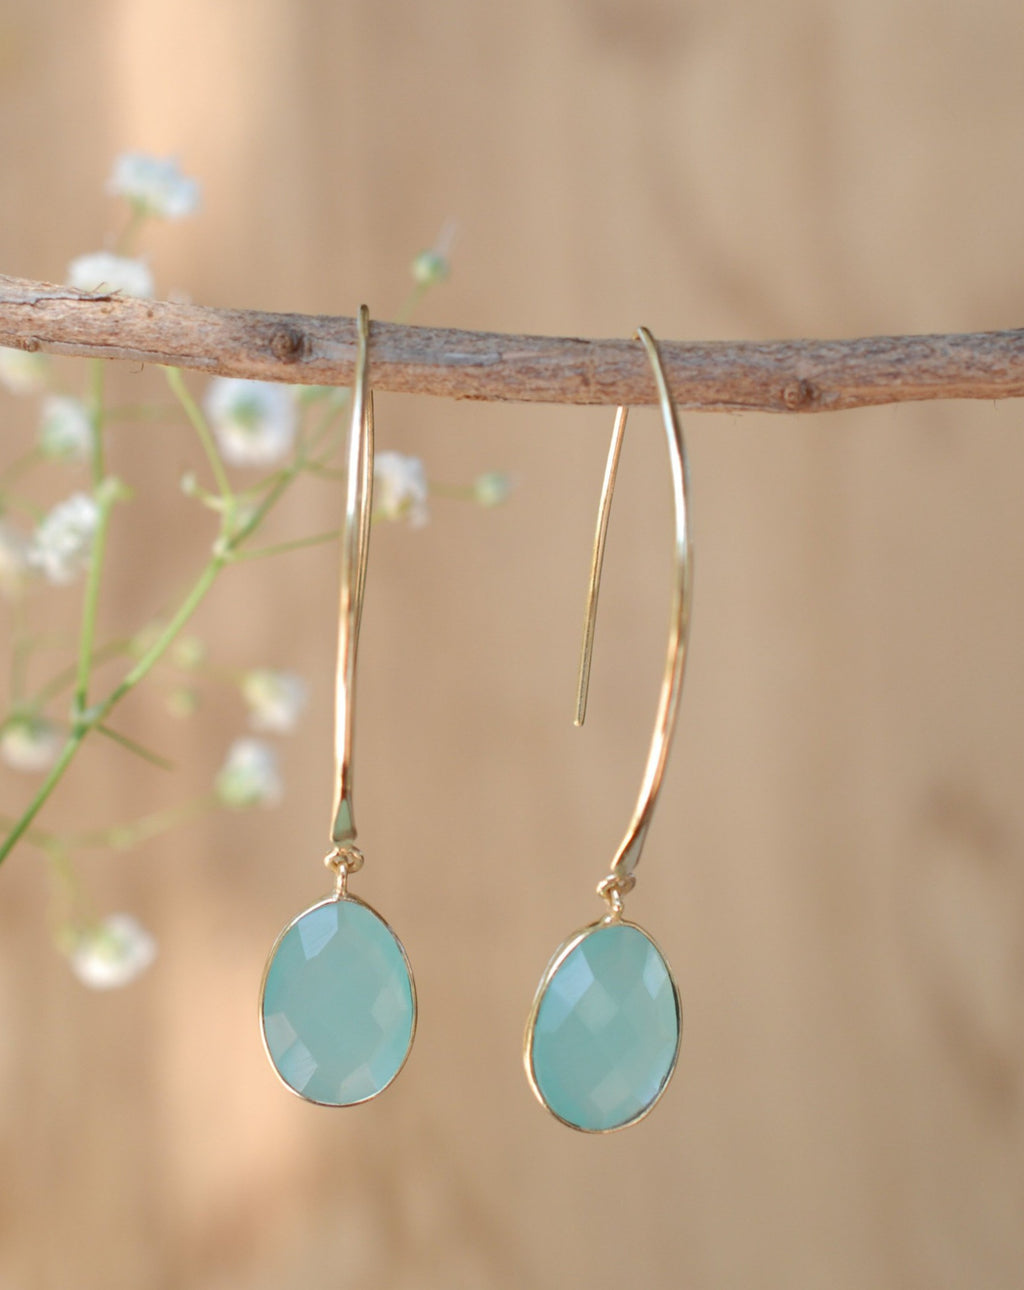 Camila Earrings * Aqua Chalcedony * Gold Plated 18k * BJE082